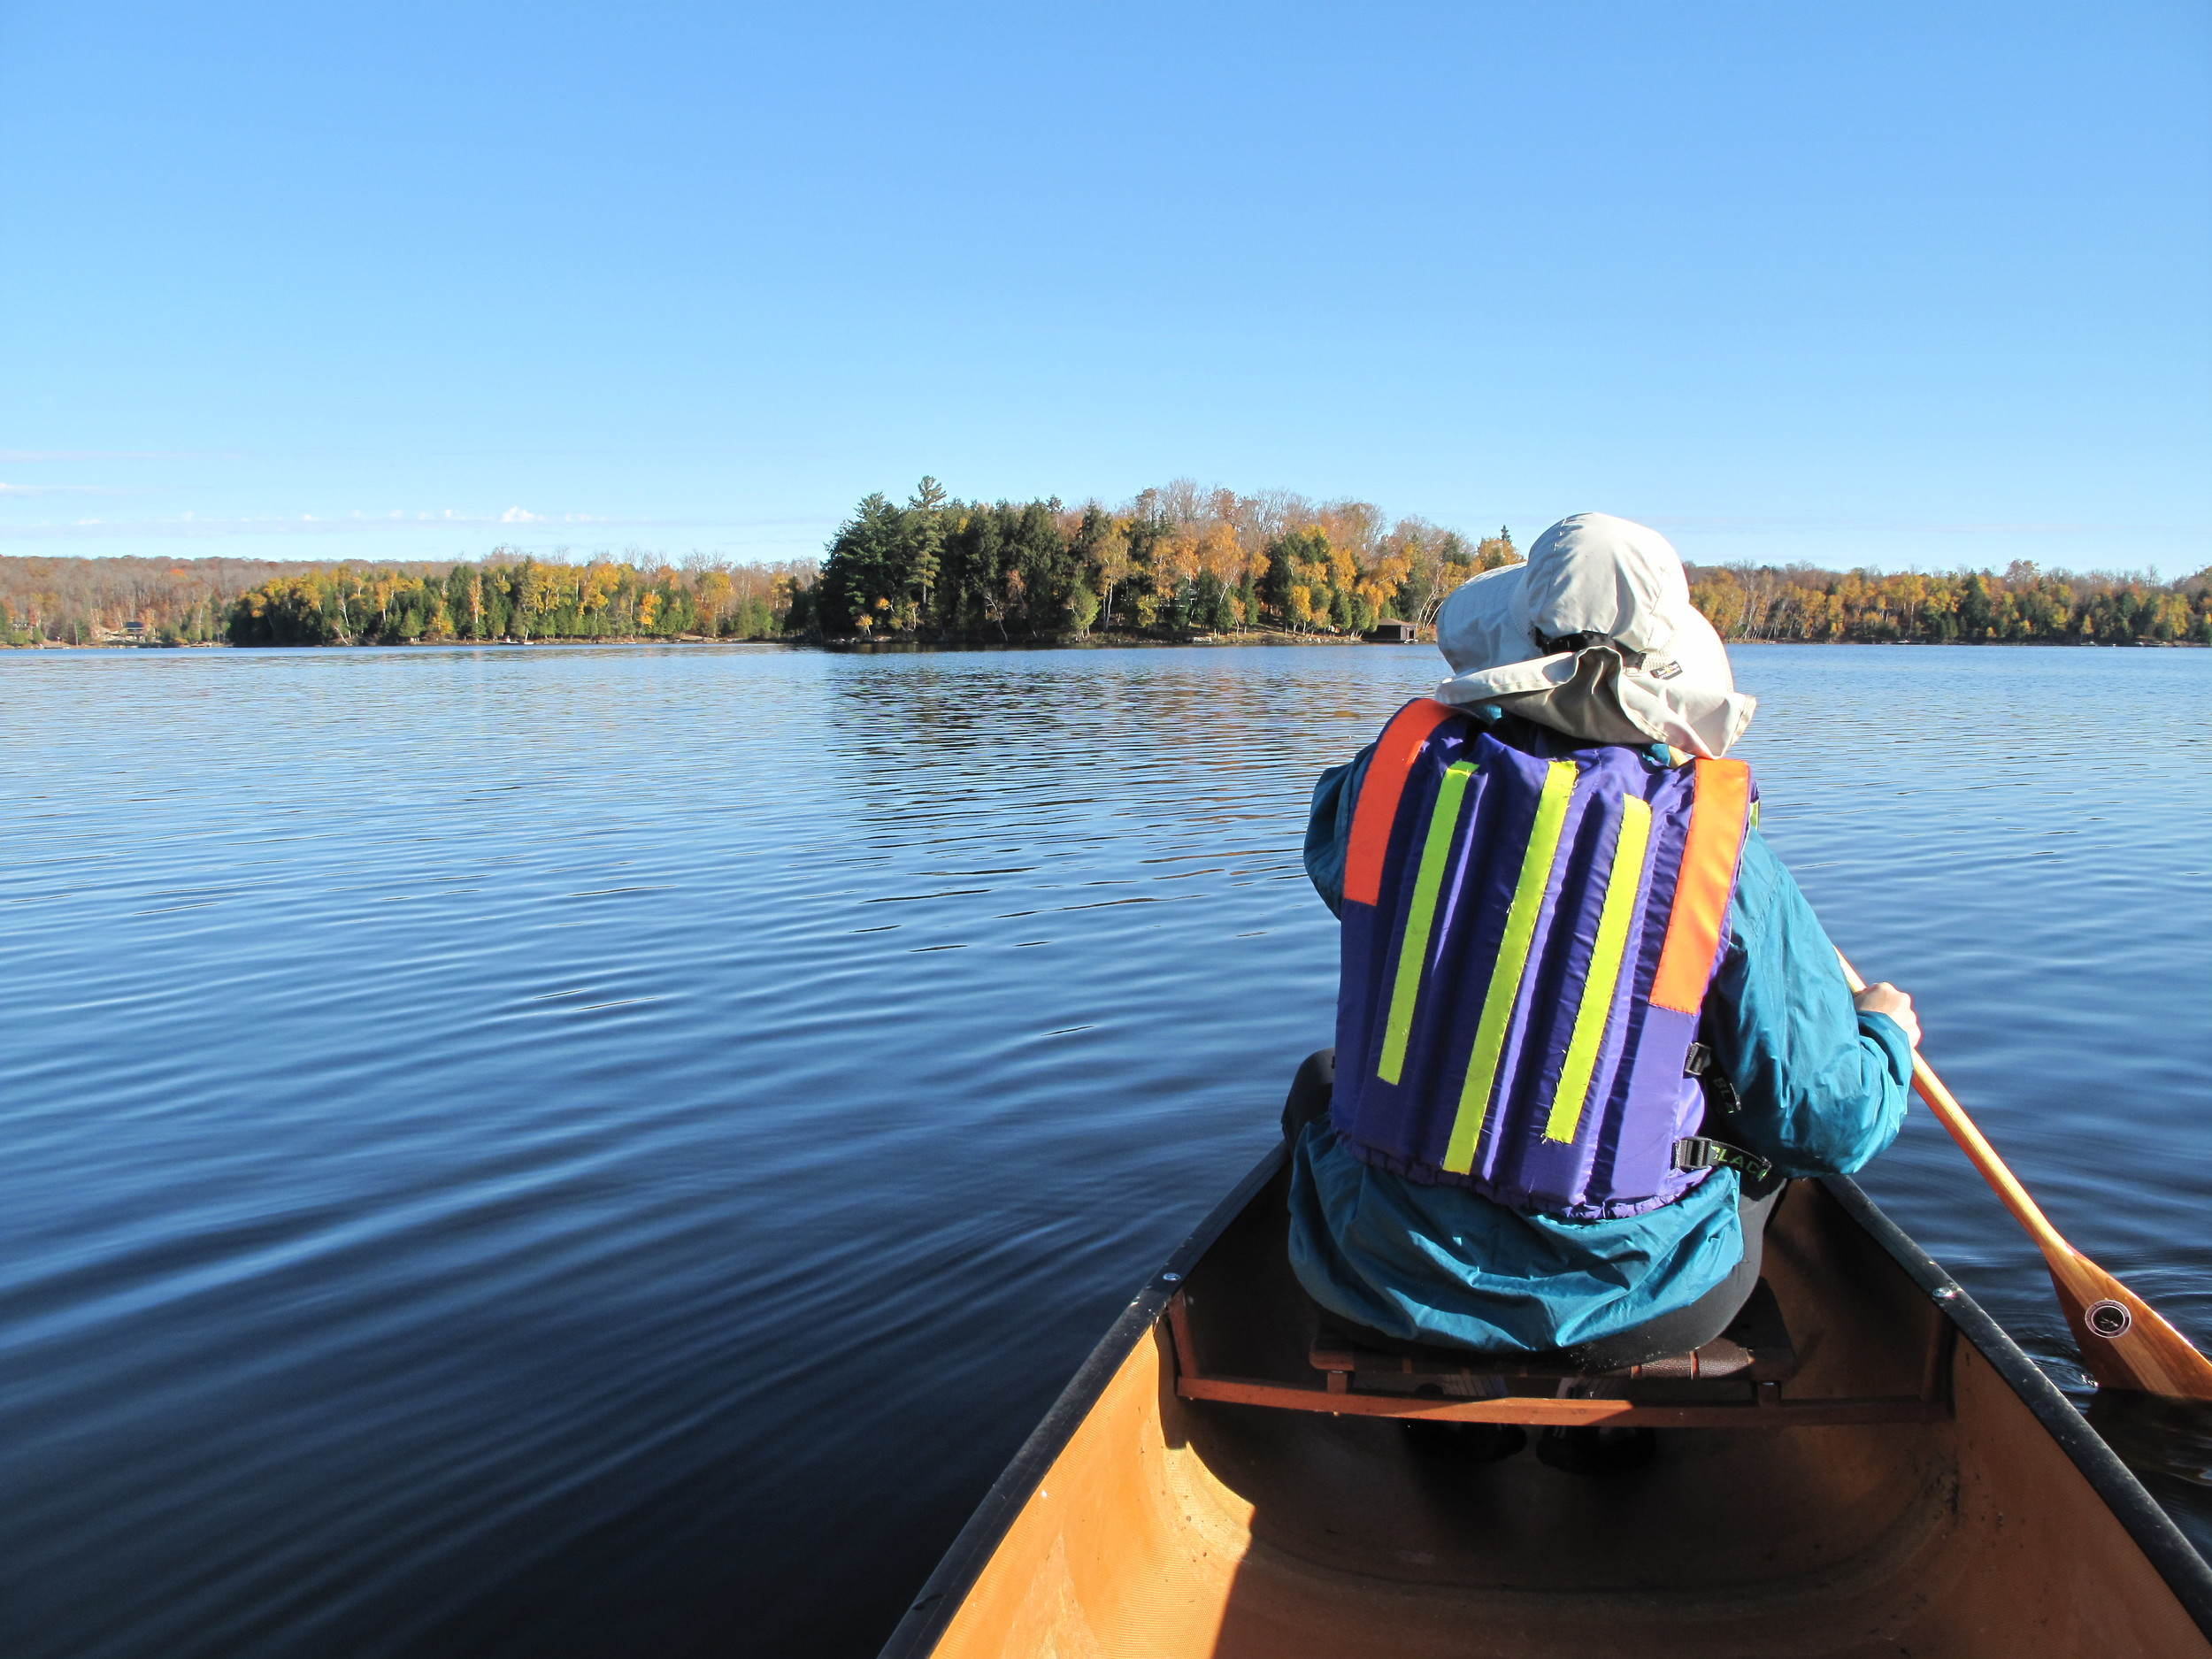 paddling gives ample time to enjoy the scenery